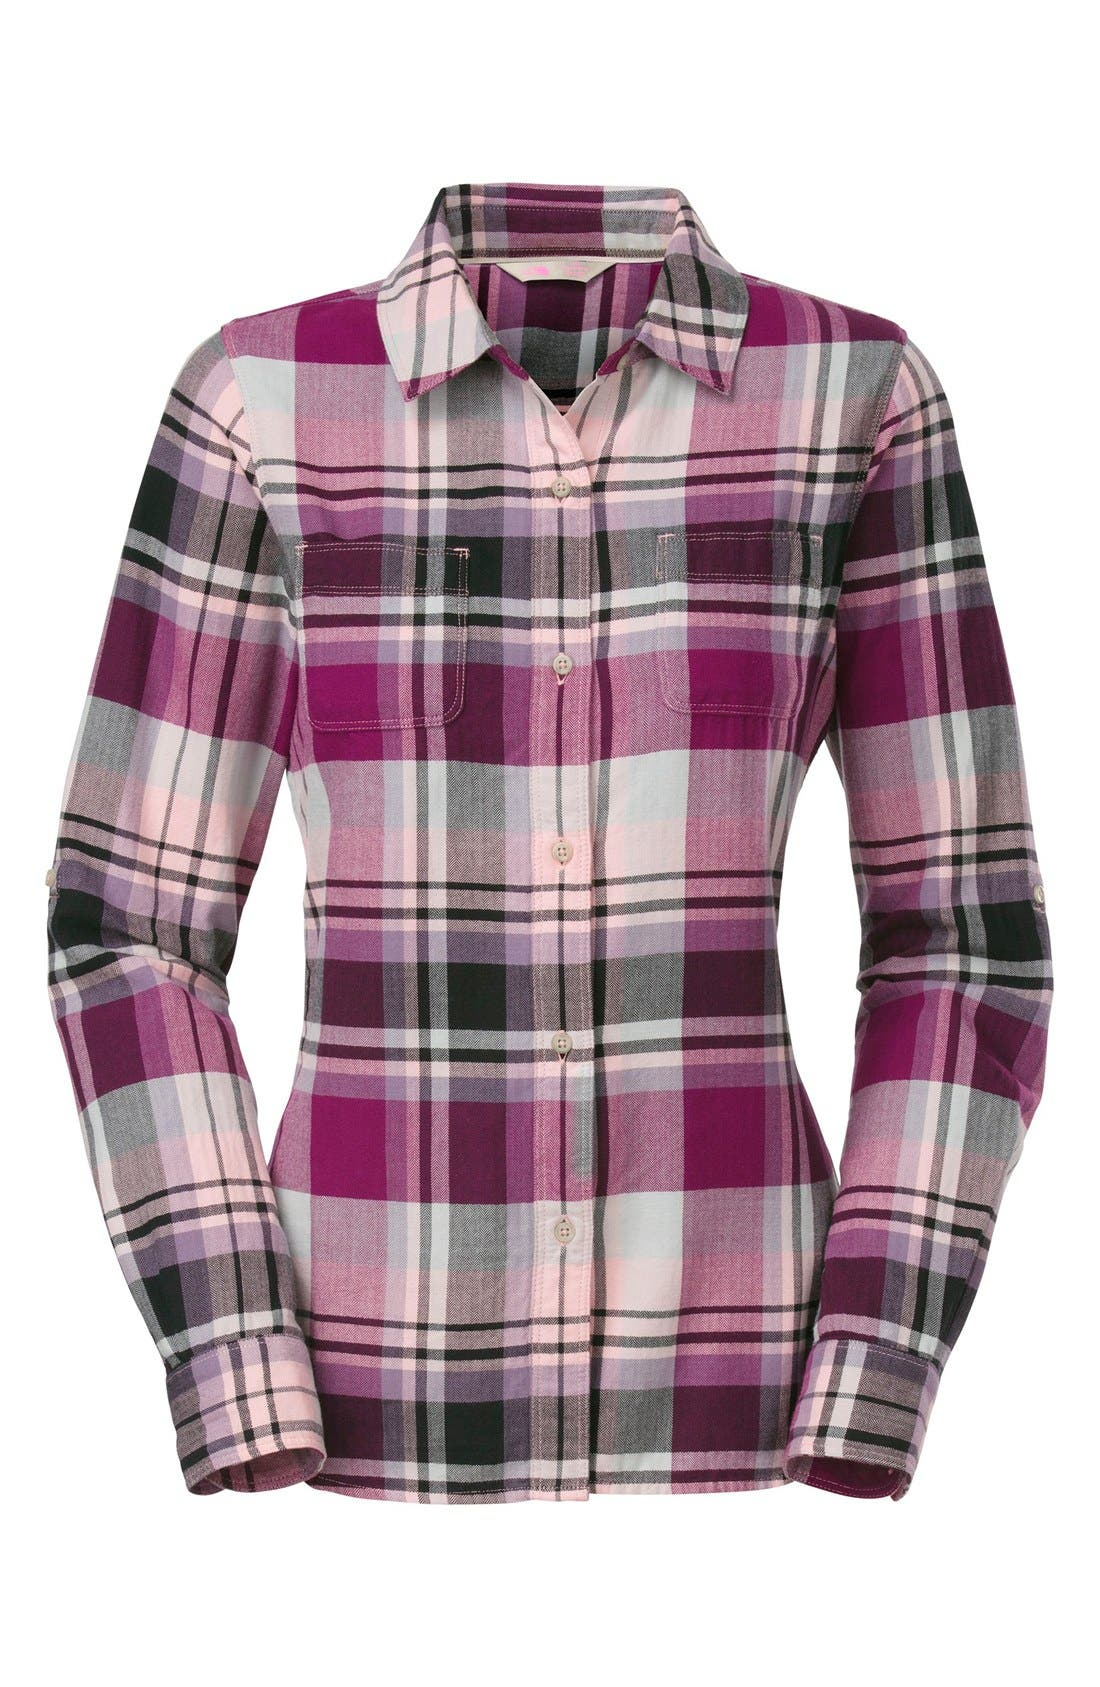 Main Image - The North Face 'Pomeria' Plaid Flannel Shirt